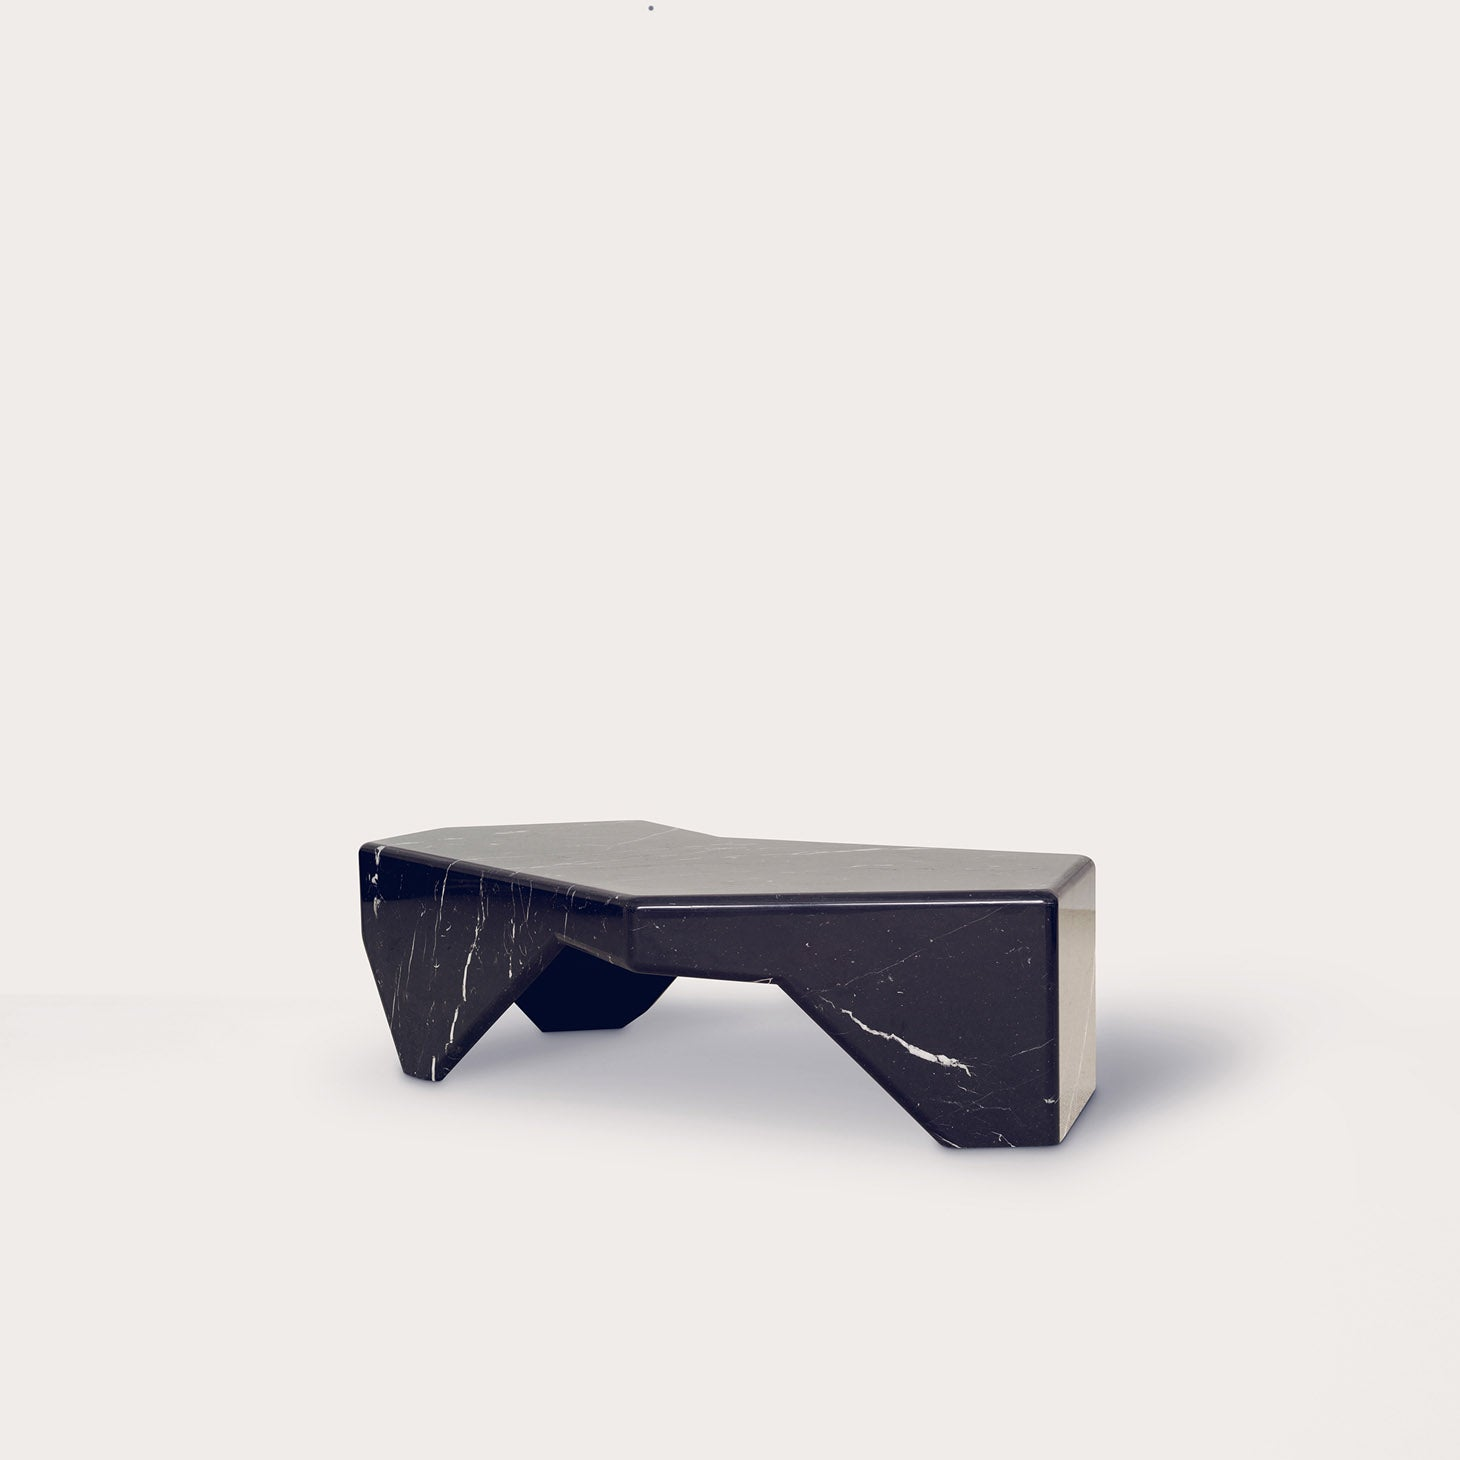 JAZ Tables Christophe Delcourt Designer Furniture Sku: 008-230-10394